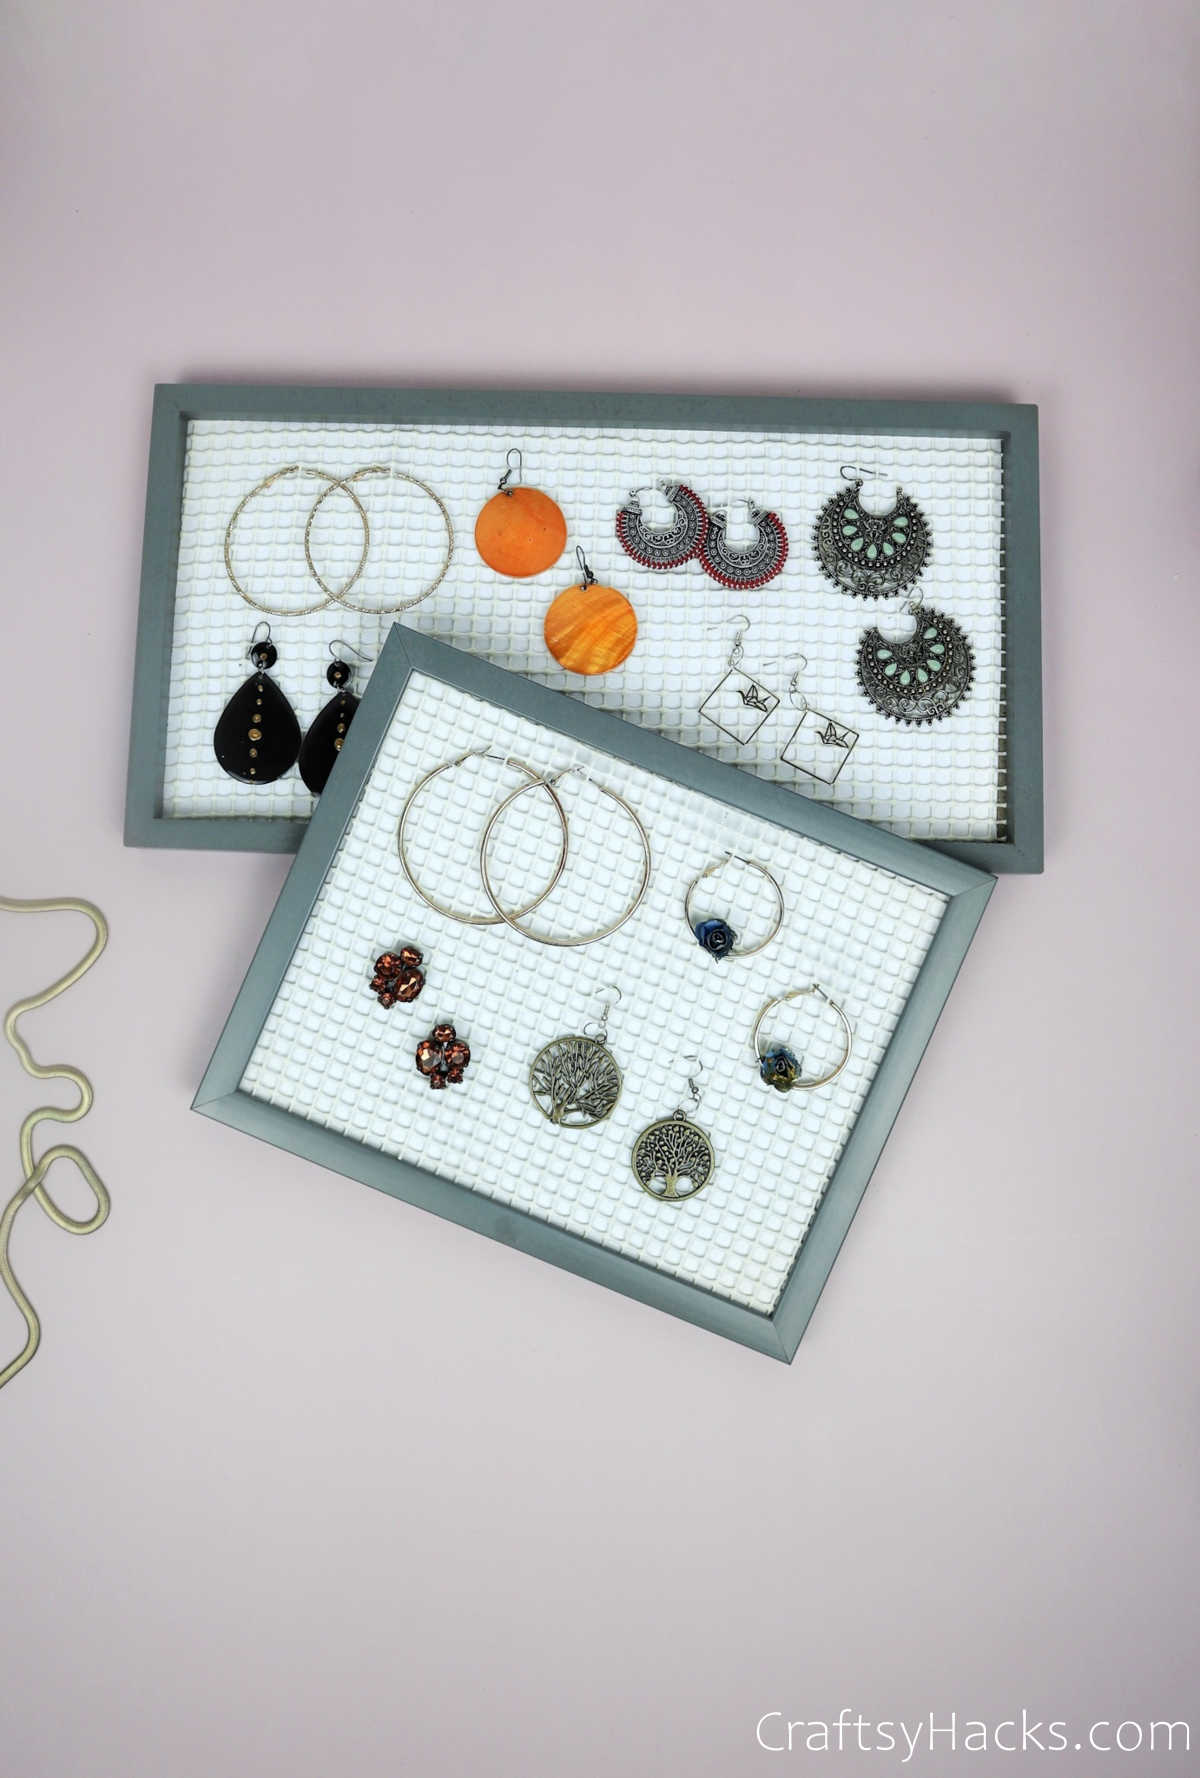 organizers full with earrings